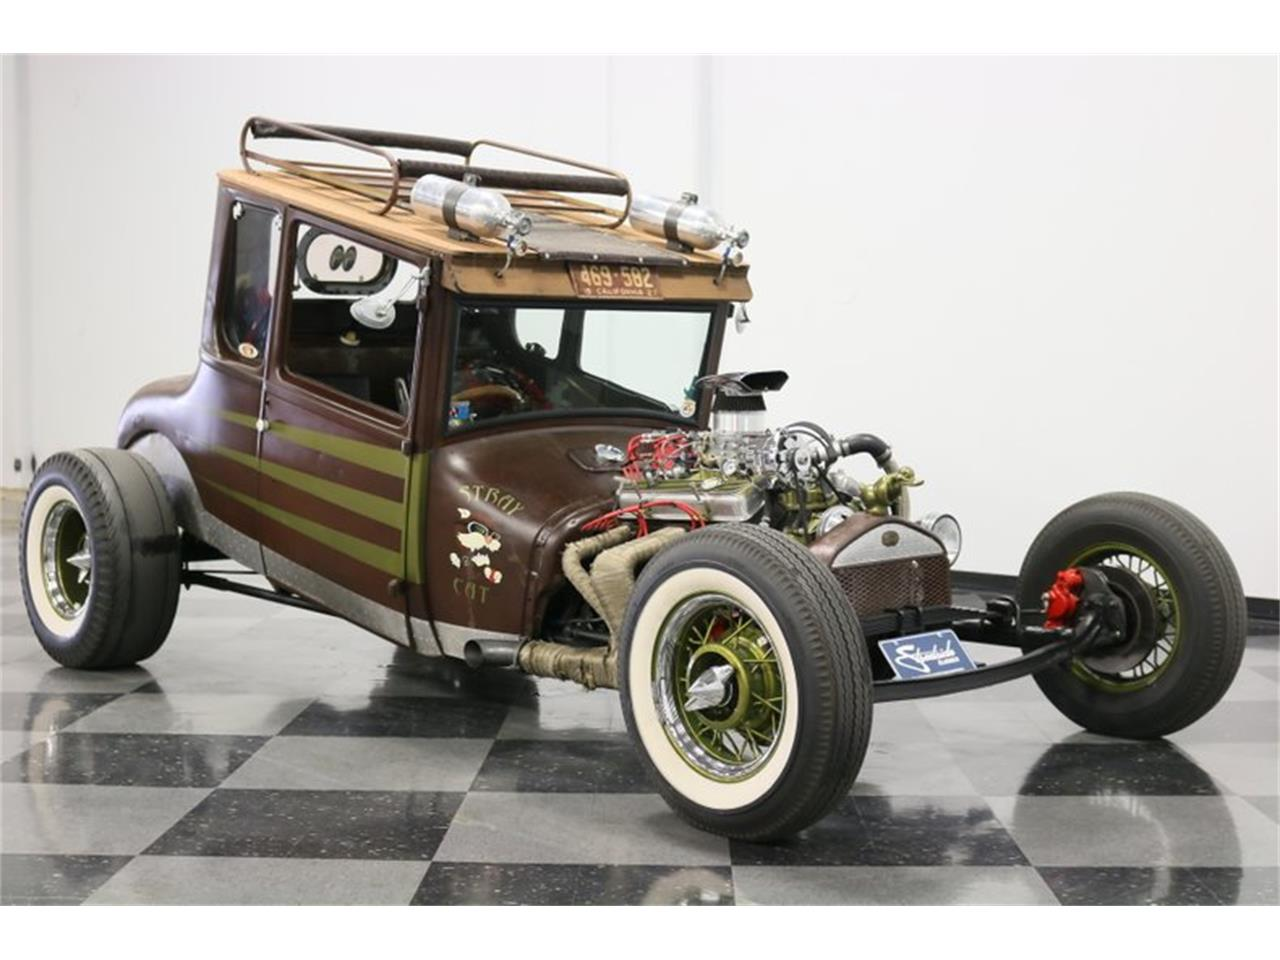 Large Picture of Classic 1927 Ford Coupe located in Ft Worth Texas Offered by Streetside Classics - Dallas / Fort Worth - Q4LA